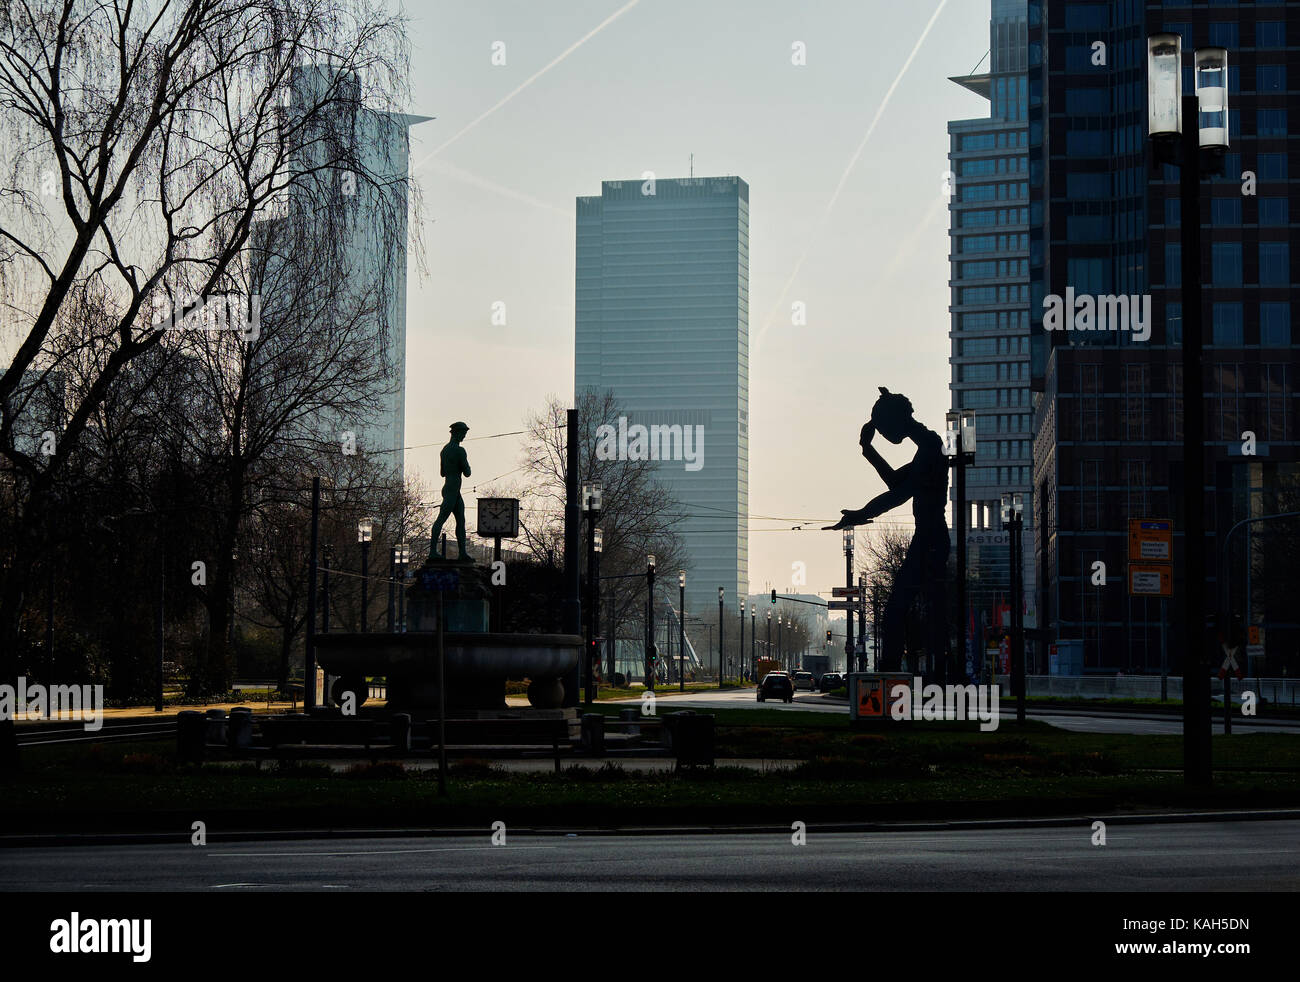 Frankfurt am Main, Germany - March 16, 2017: View from Ludwig-Erhard-Anlage to Friedrich-Ebert-Anlage with Hermes Stock Photo